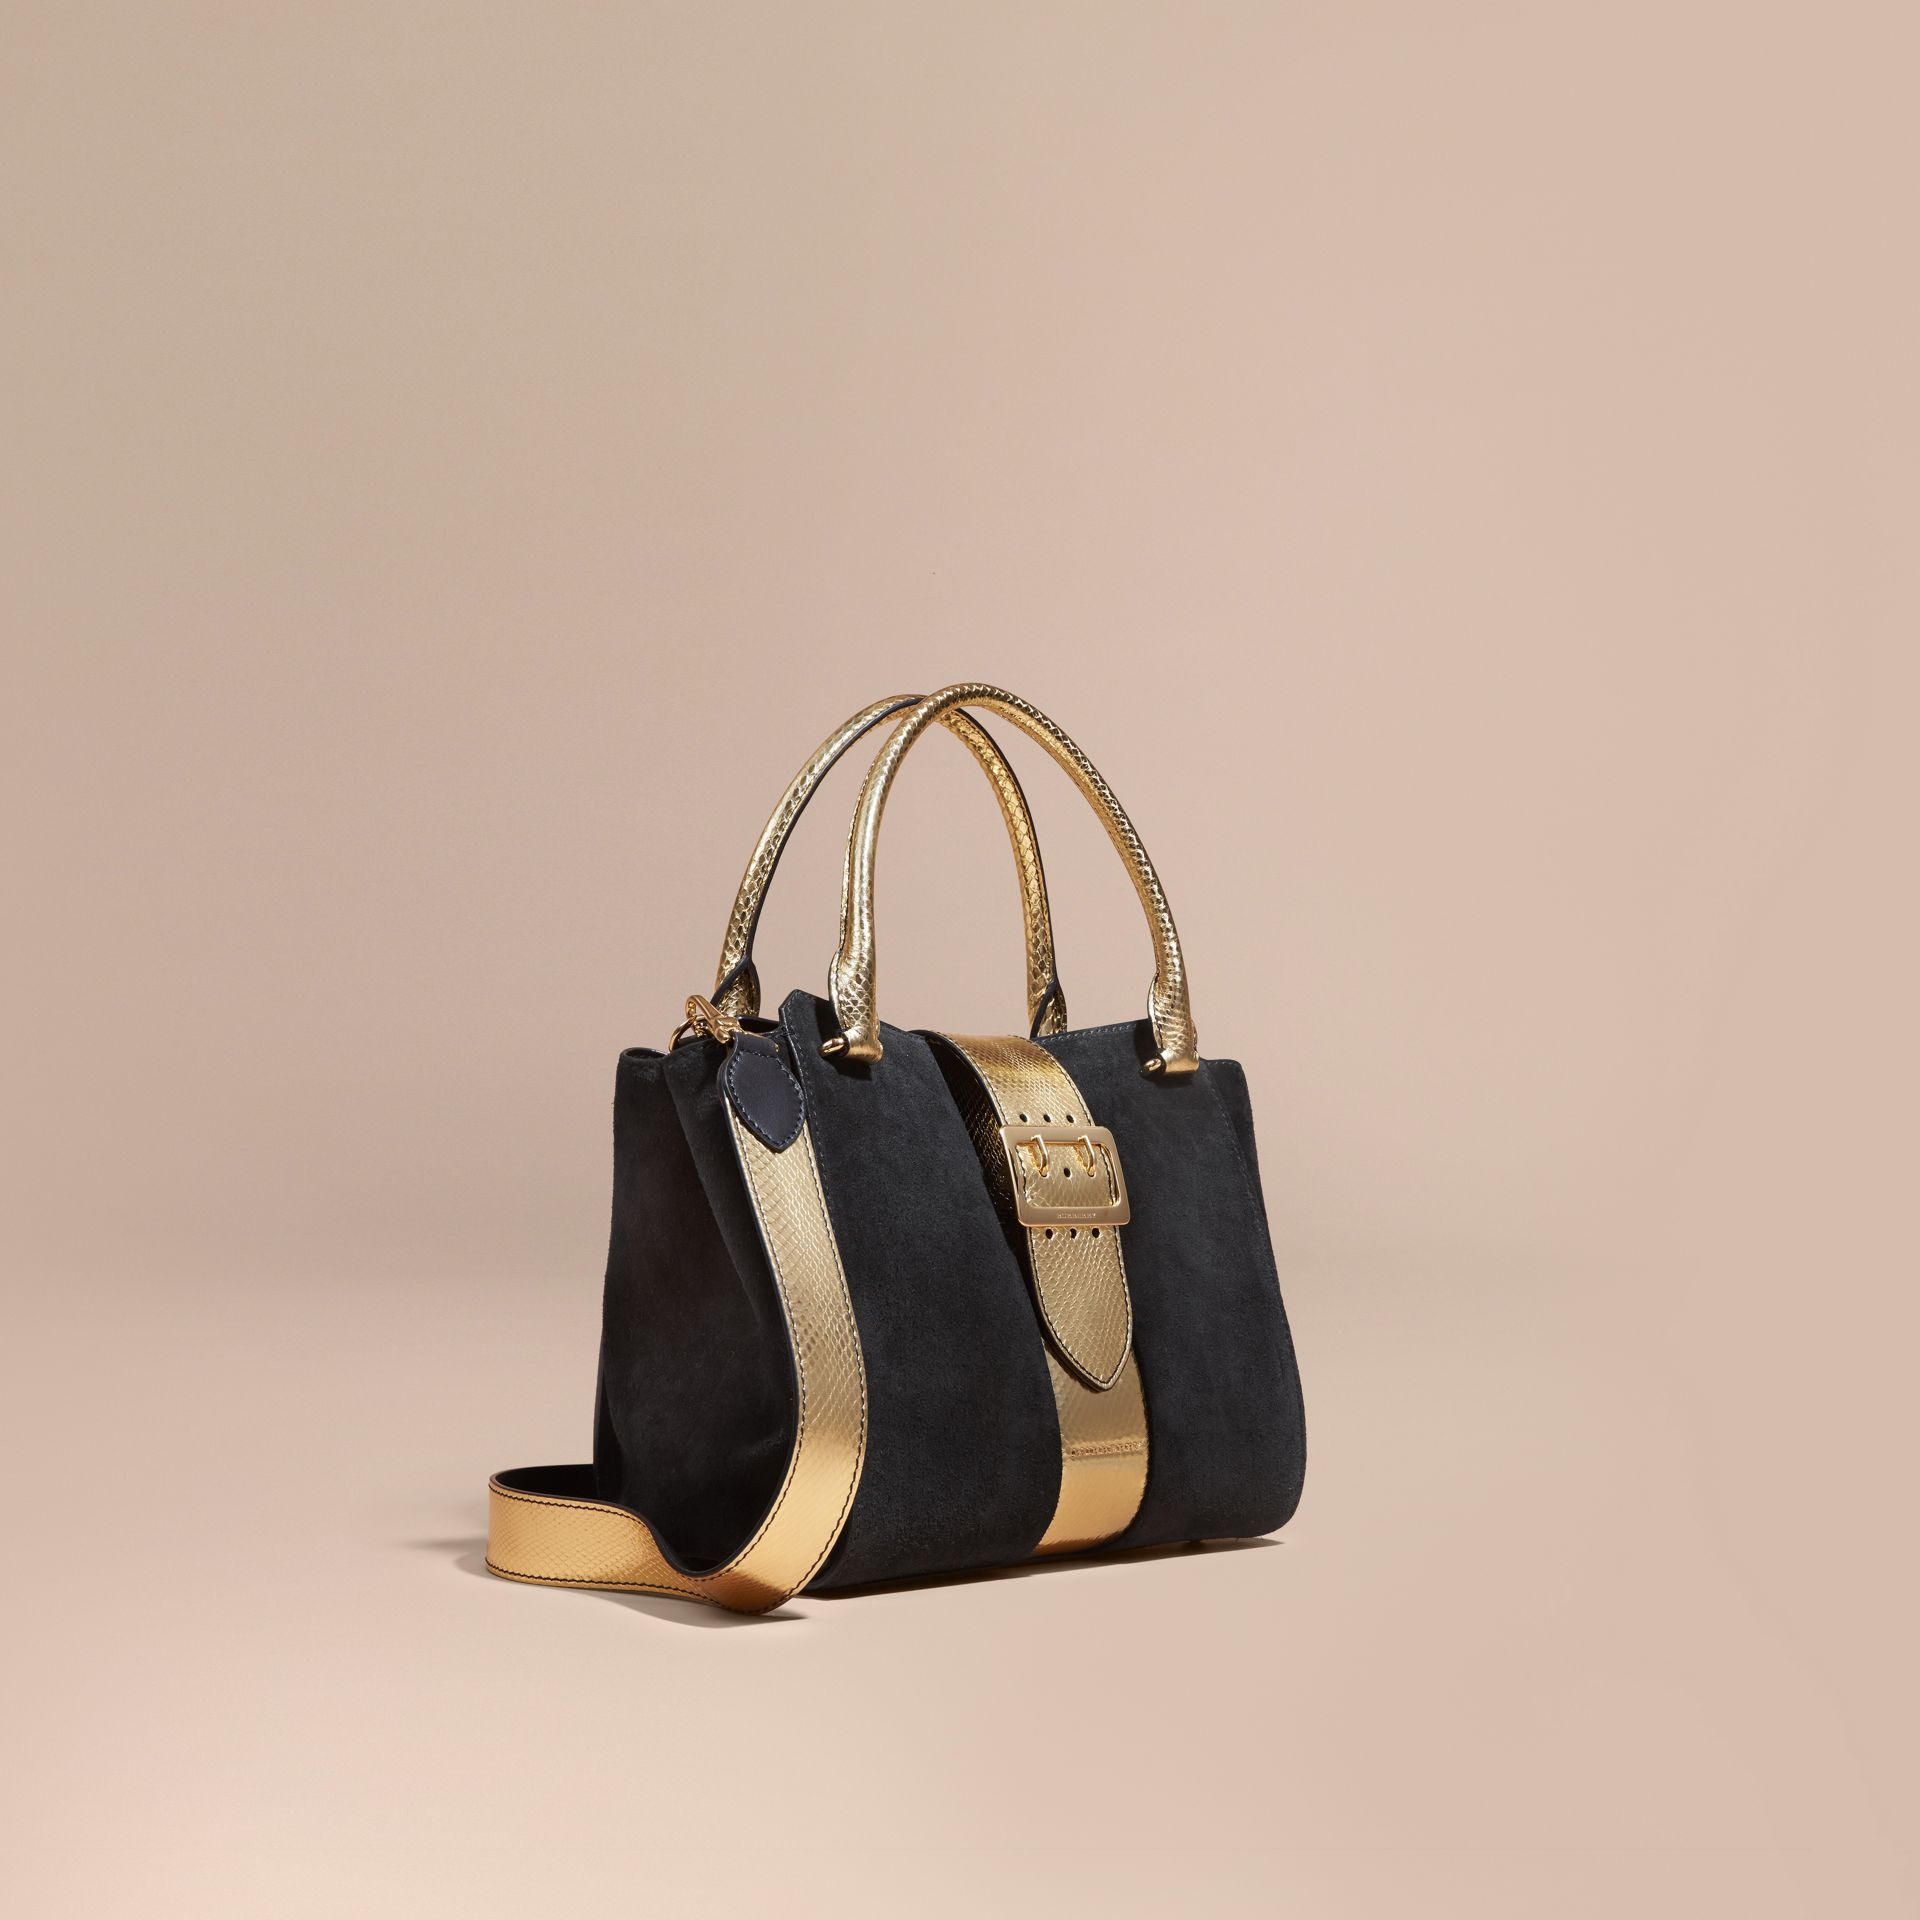 Sac tote The Buckle moyen en cuir velours et peau de serpent (Noir/or) - Femme | Burberry - photo de la galerie 1